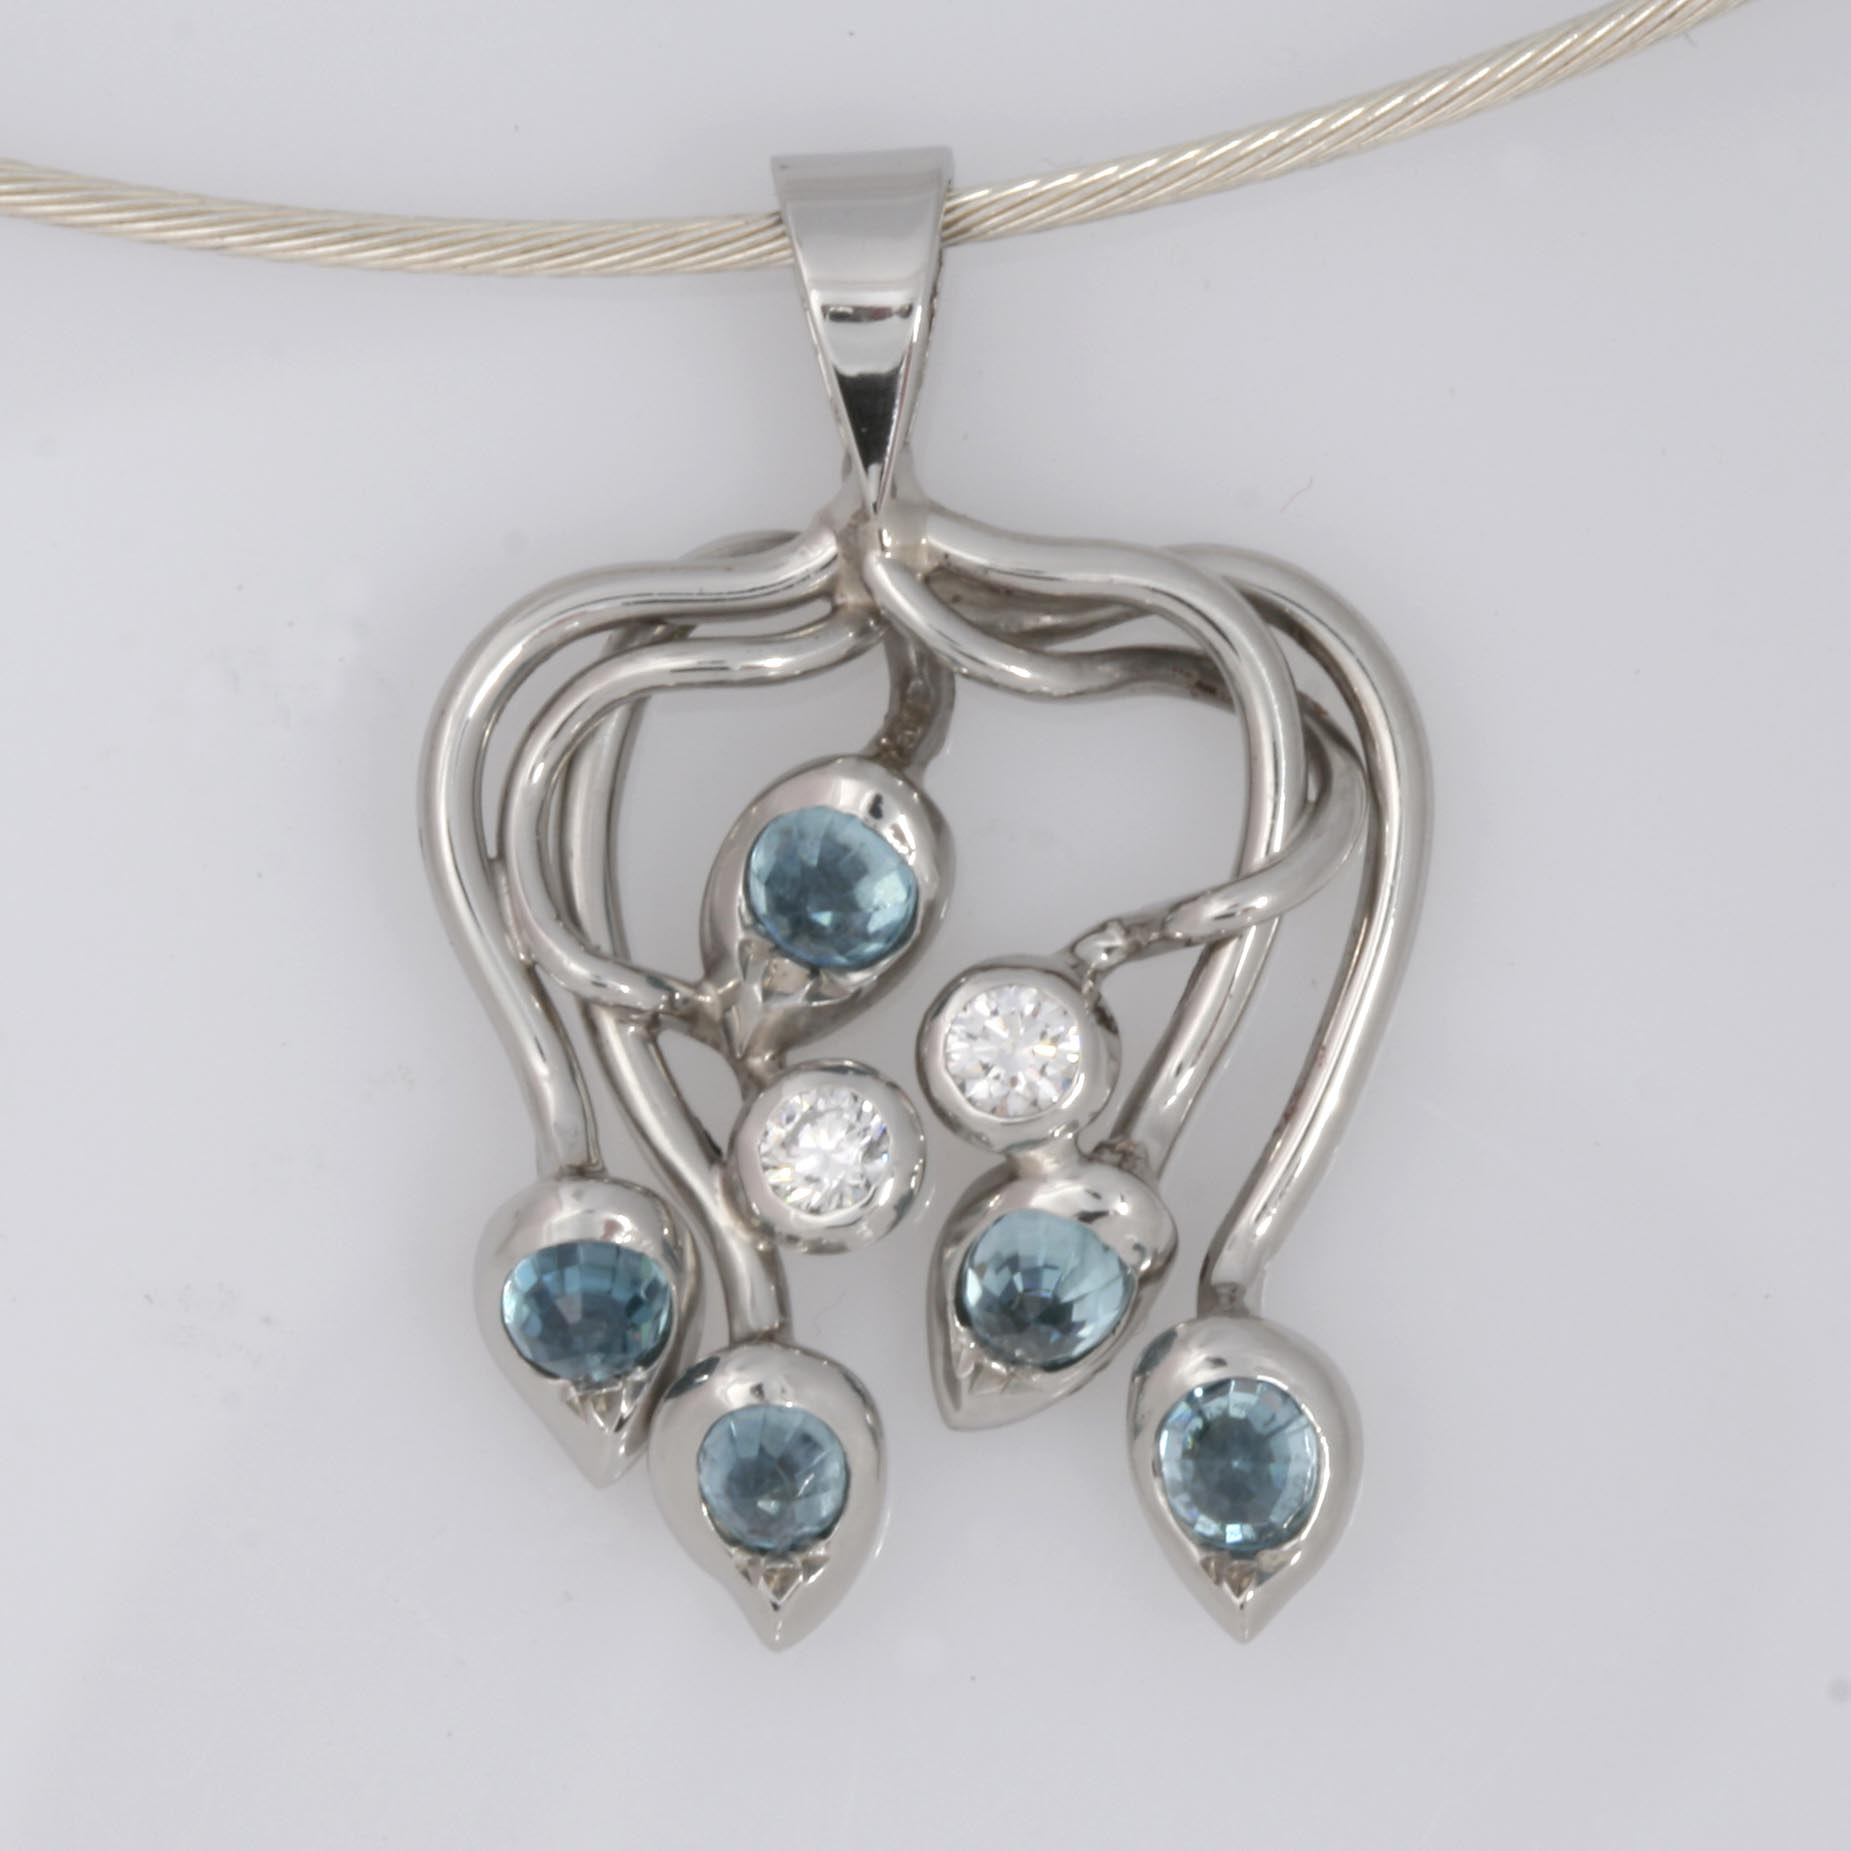 Handmade ladies palladium blue zircon and diamond pendant